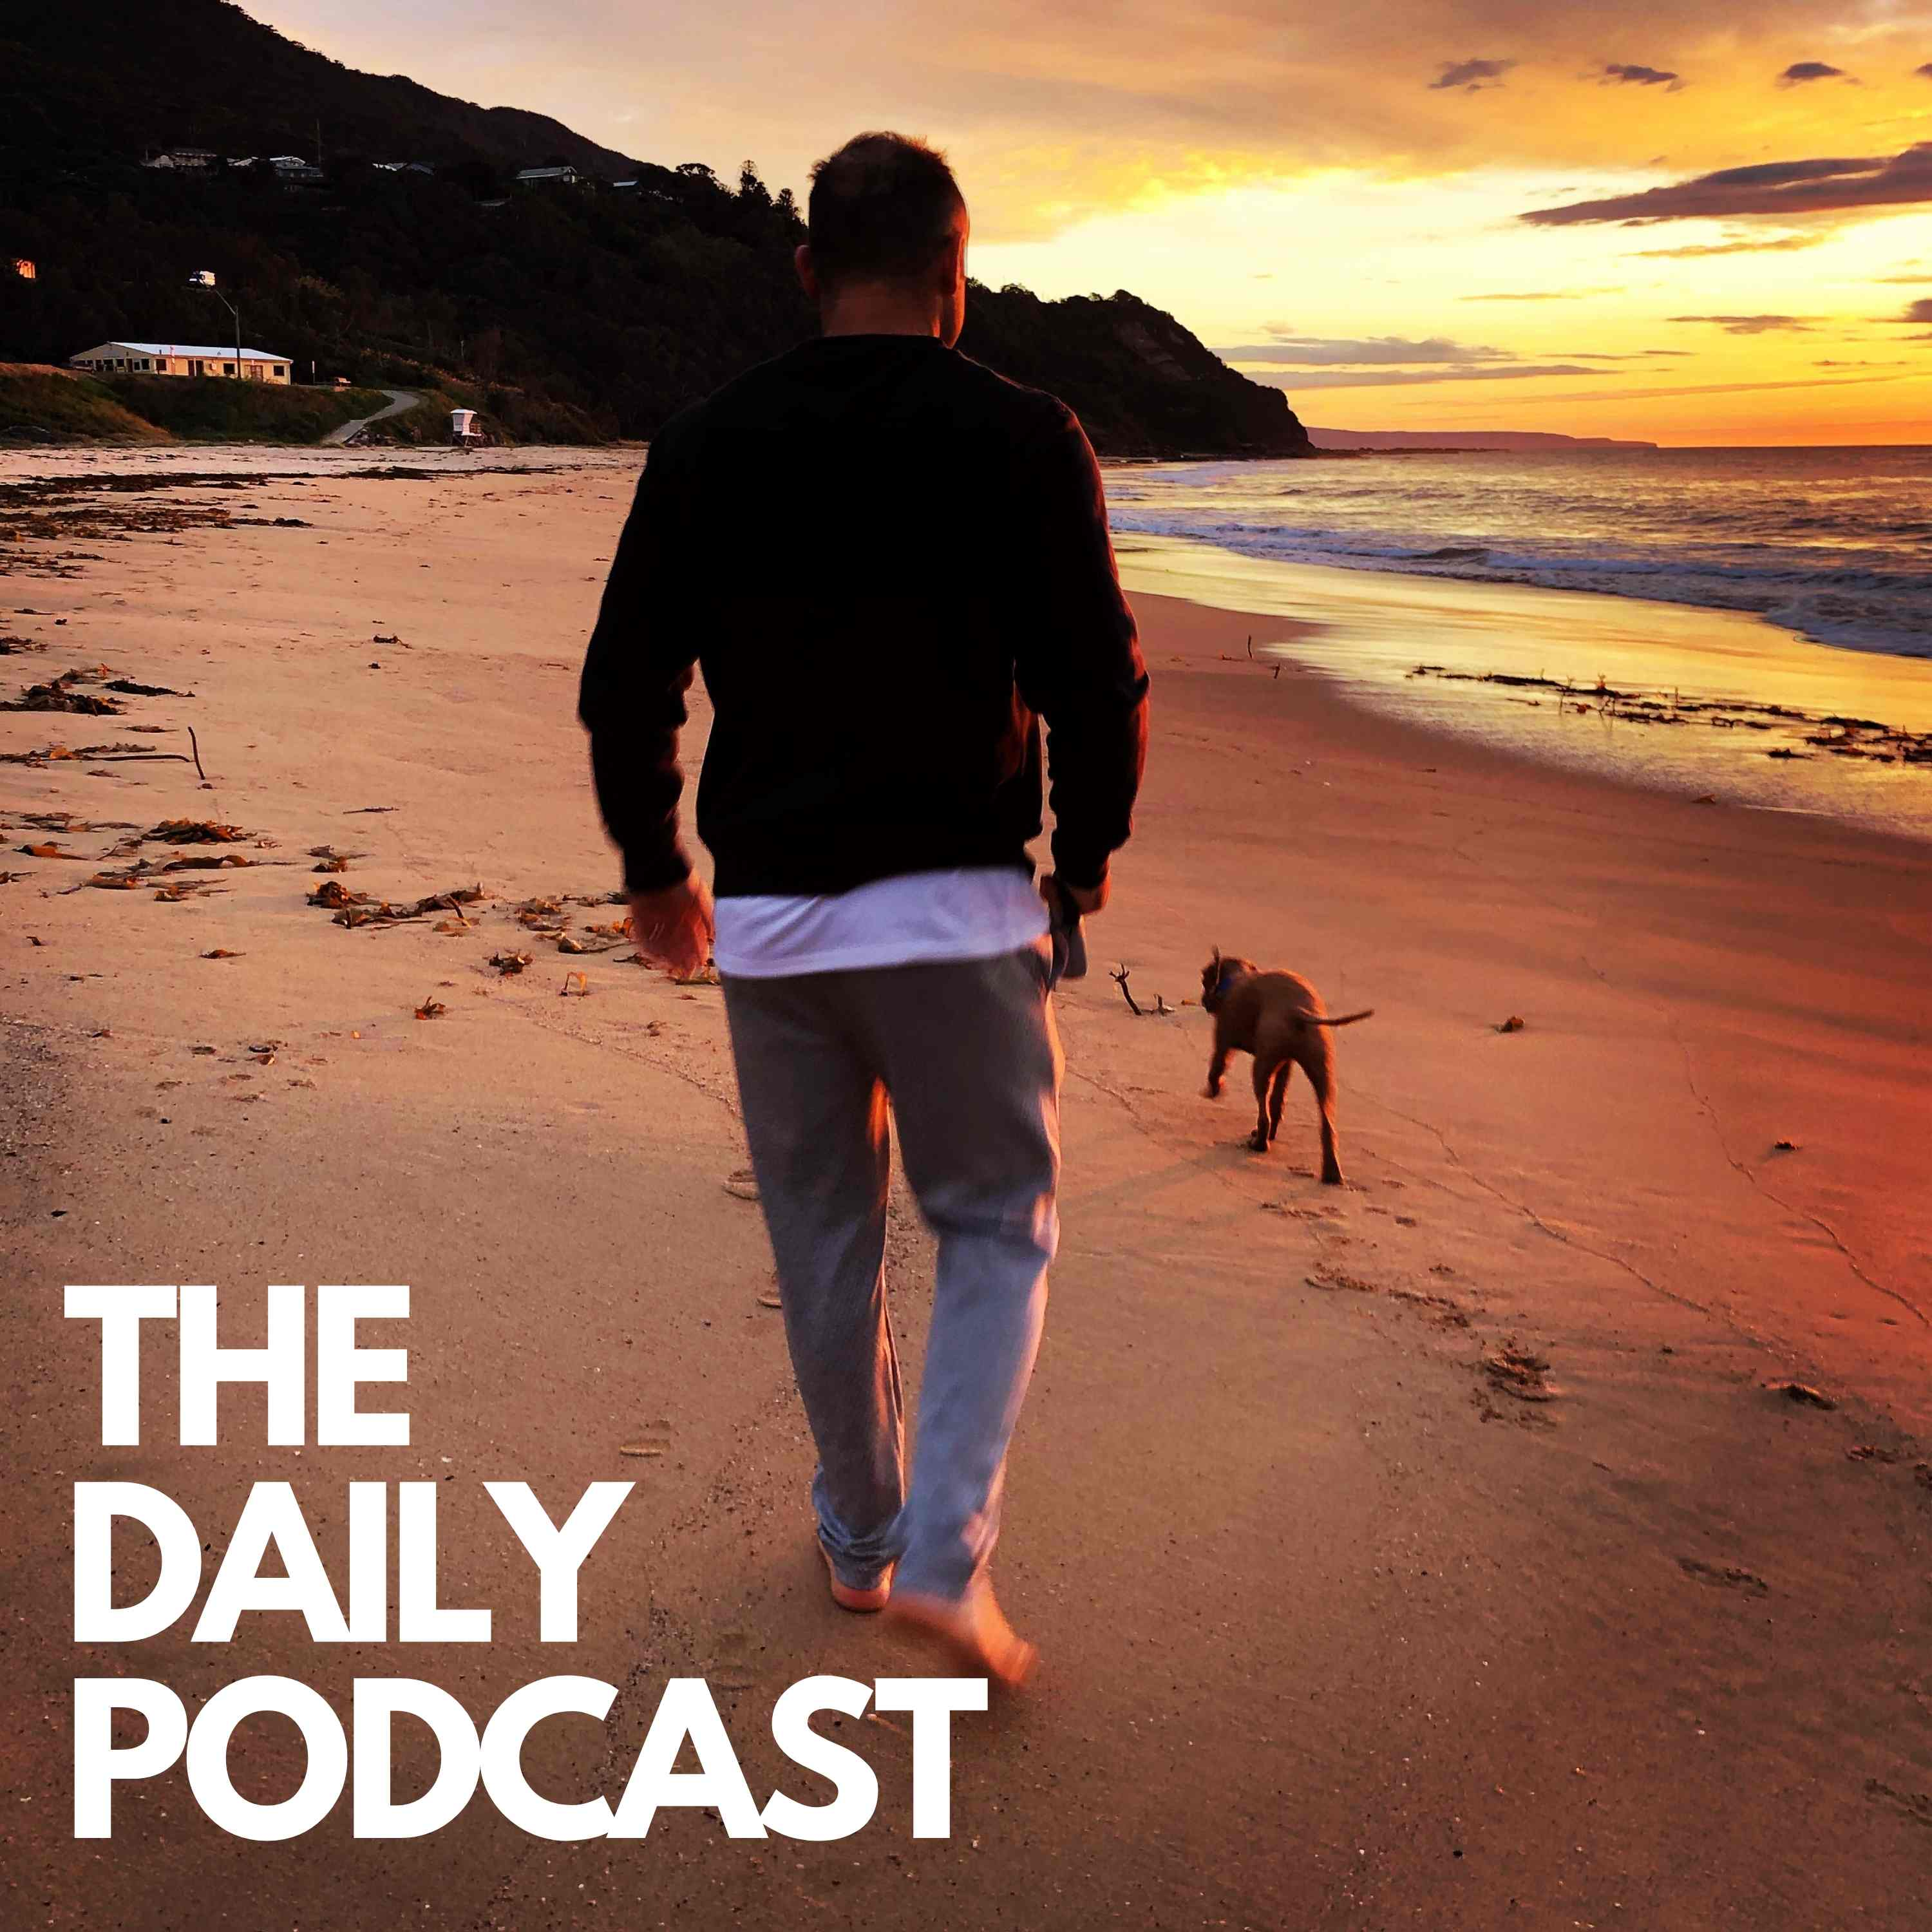 The Daily Podcast with Jonathan Doyle